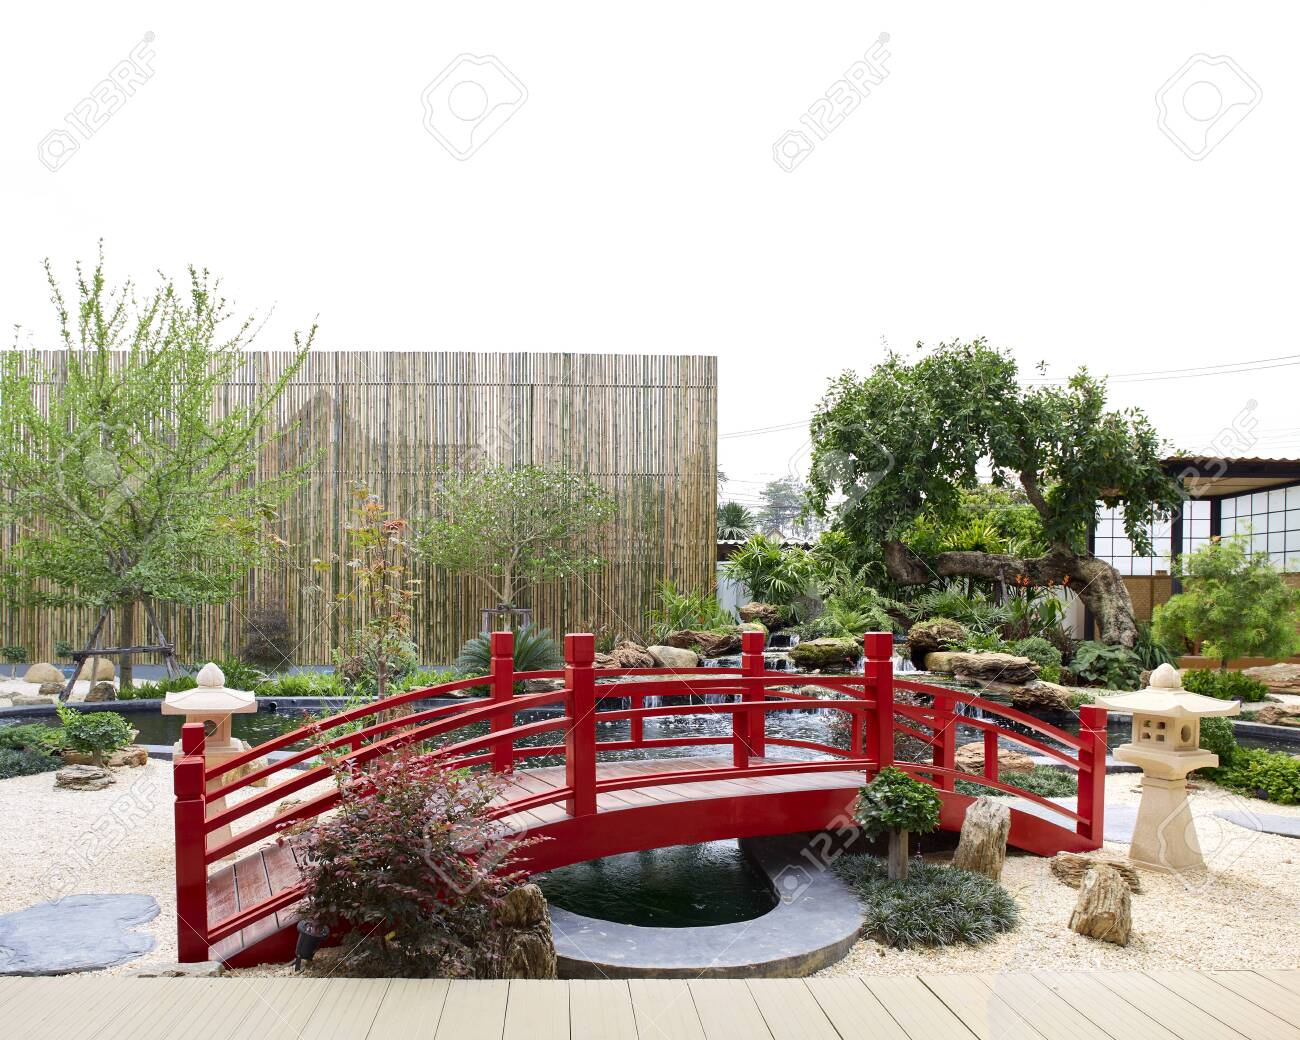 Japan With Small Inside Indoor Garden Japanese Traditional Garden Stock Photo Picture And Royalty Free Image Image 140227757